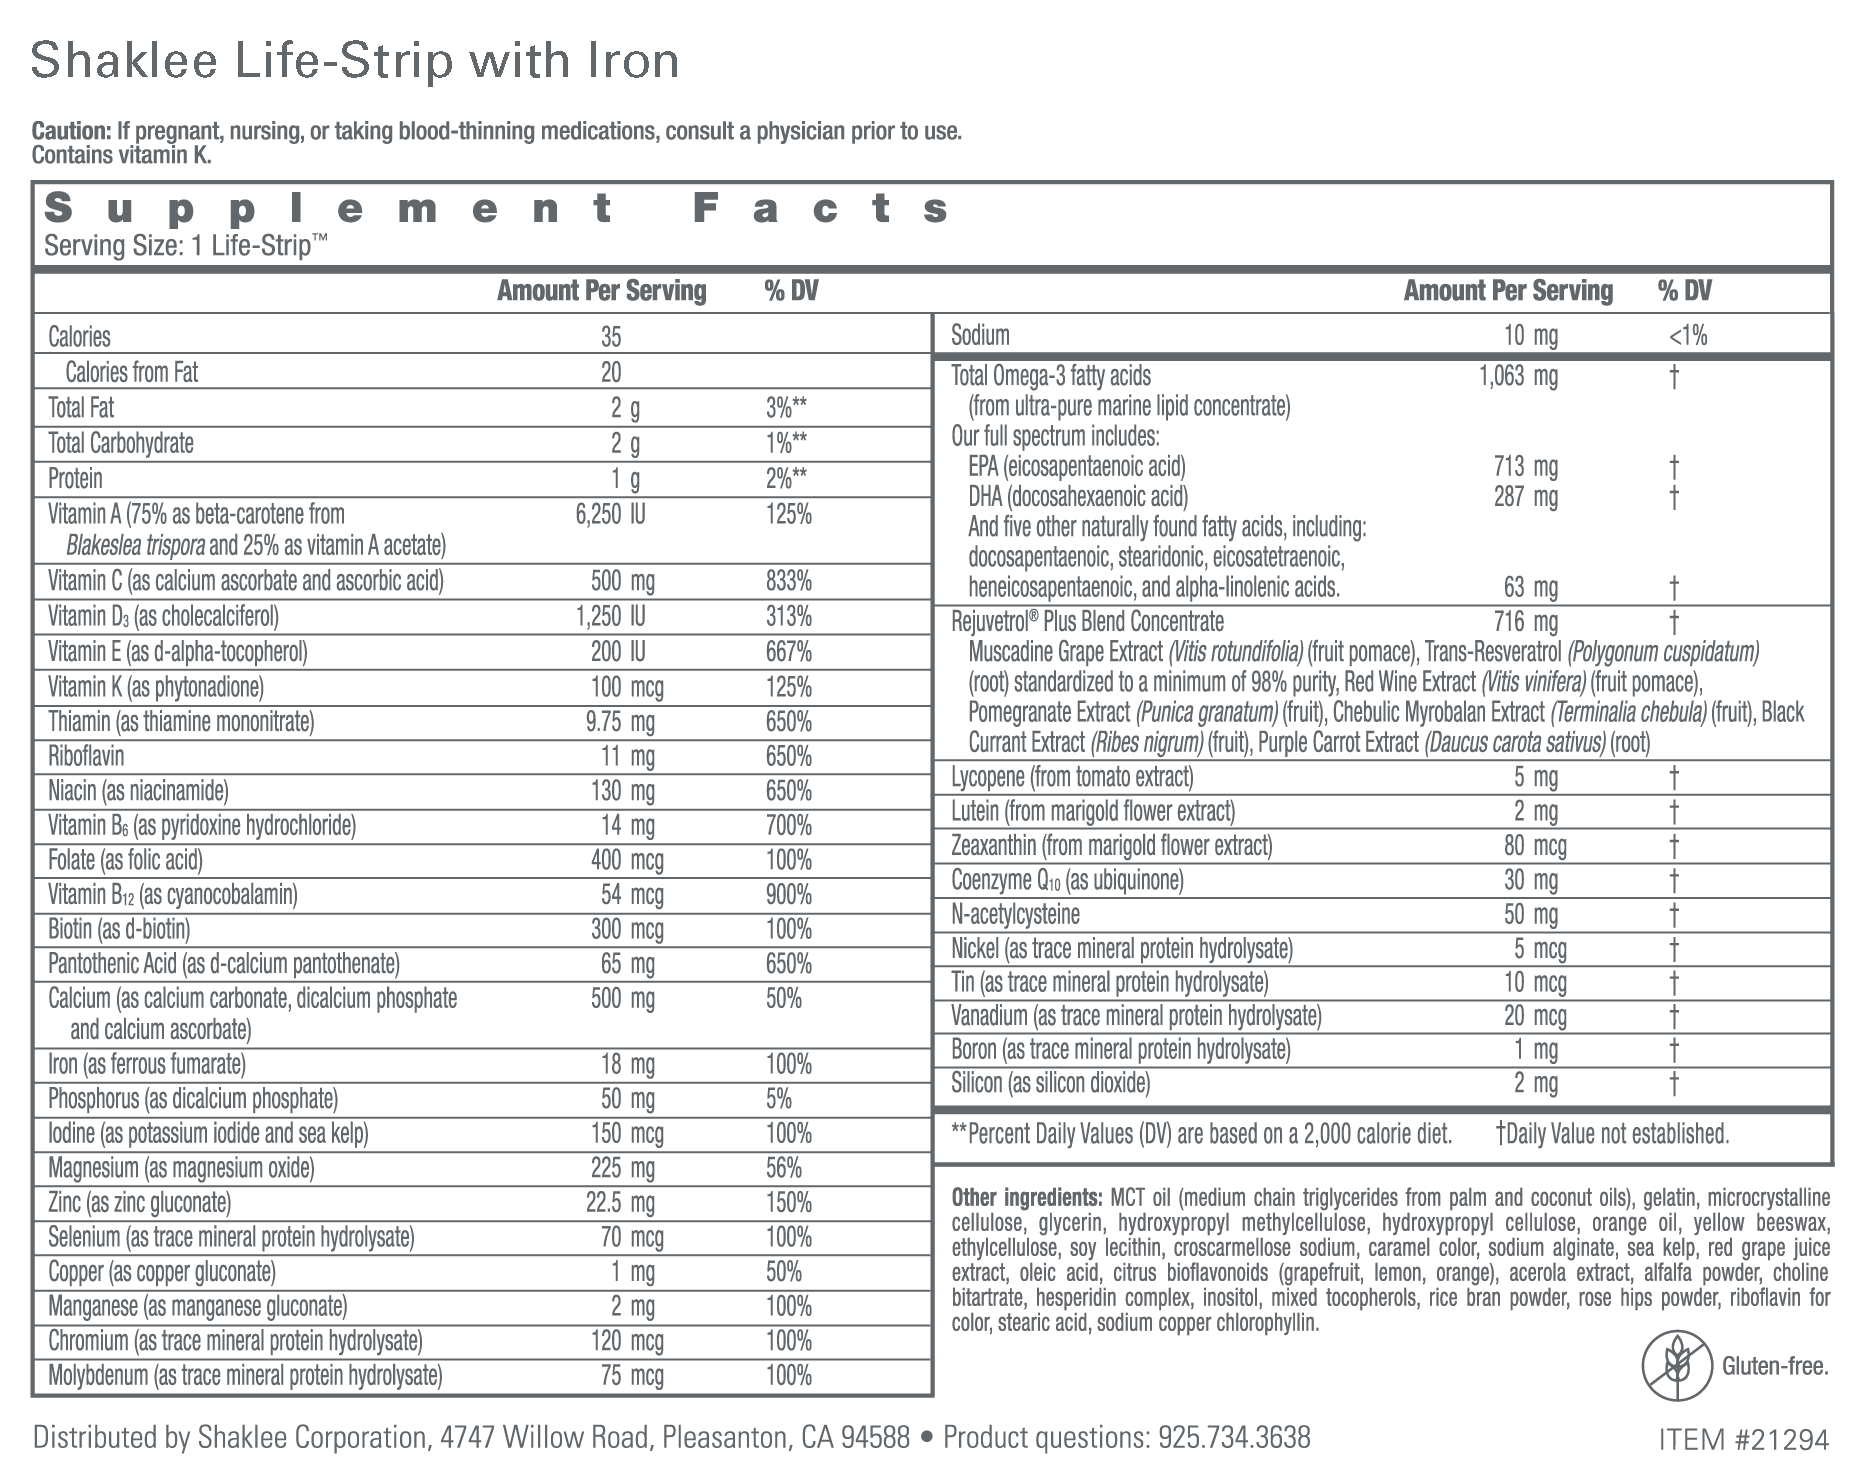 Shaklee Life-Strip Label